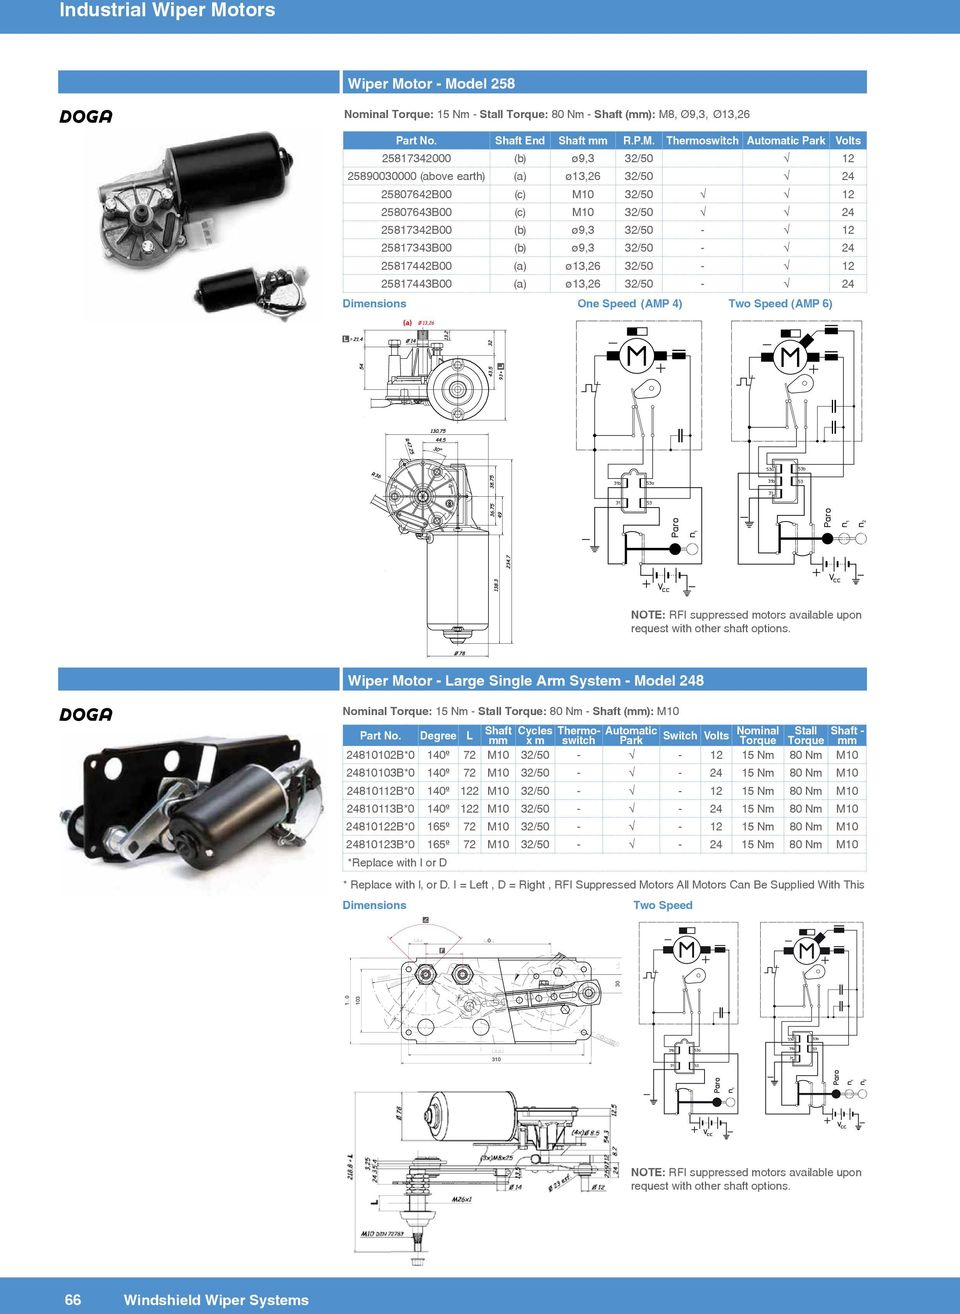 afi marine wiper motor wiring diagram wiring diagram and ongaro wiper motor wiring diagram diagrams